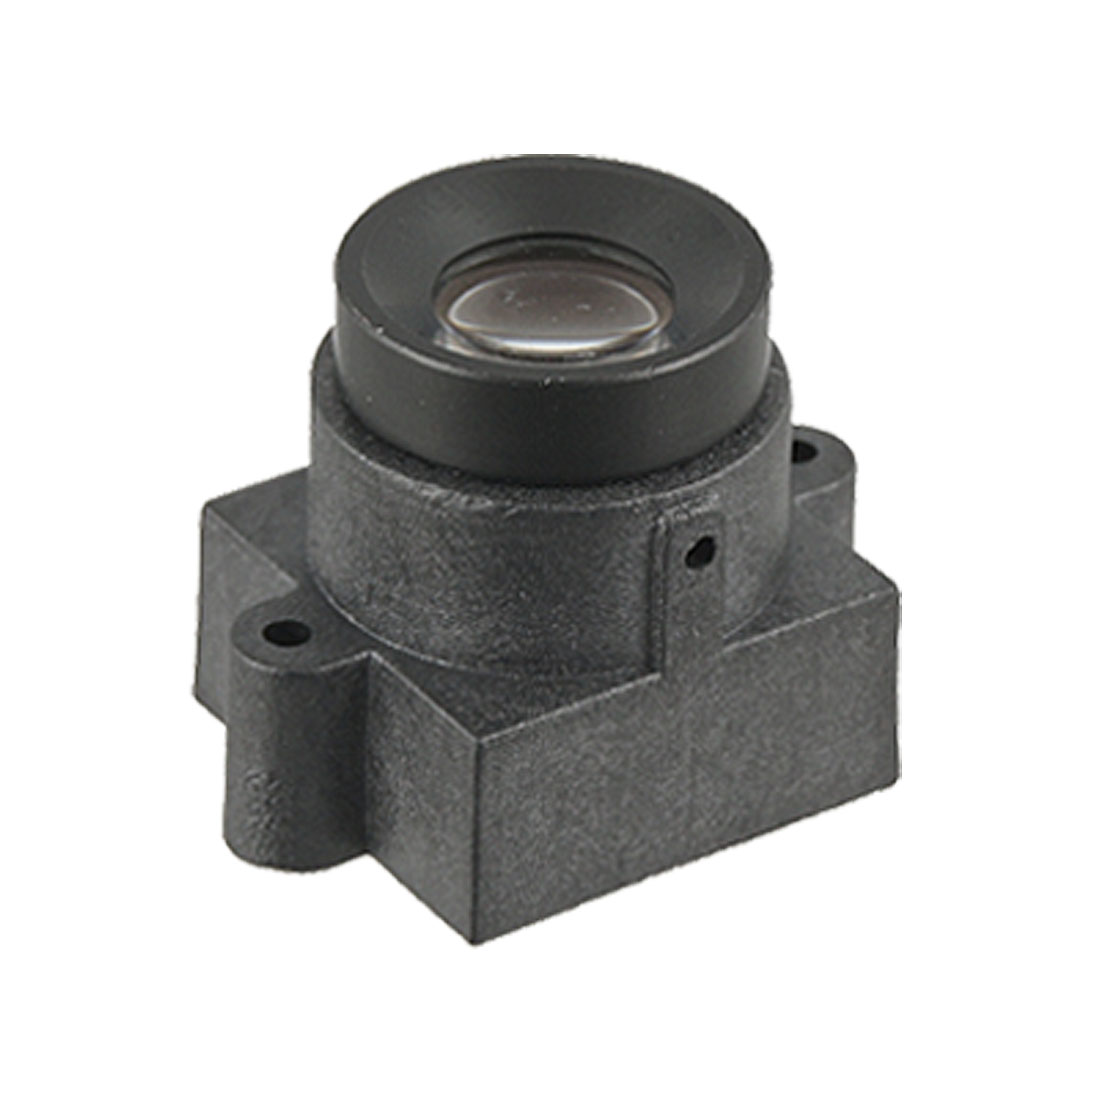 12mm Focal Length Board Lens w Cap for CCTV Camera